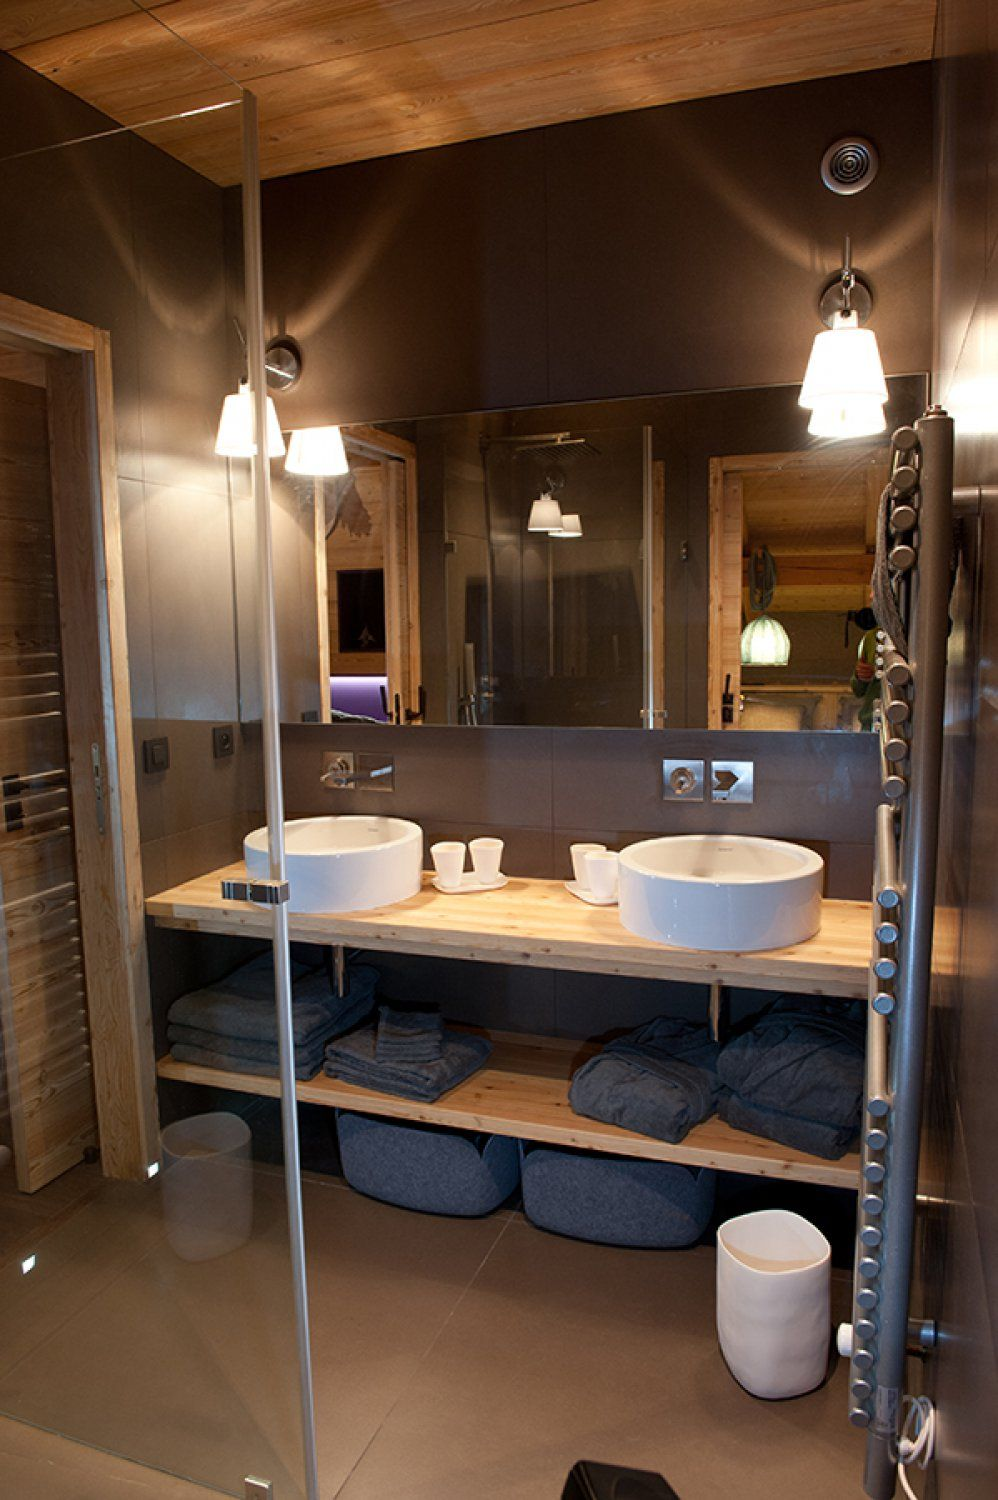 Conception salle de bain design chalet les gets chalets bayrou cottage bathroom - Conception salle de bain ...